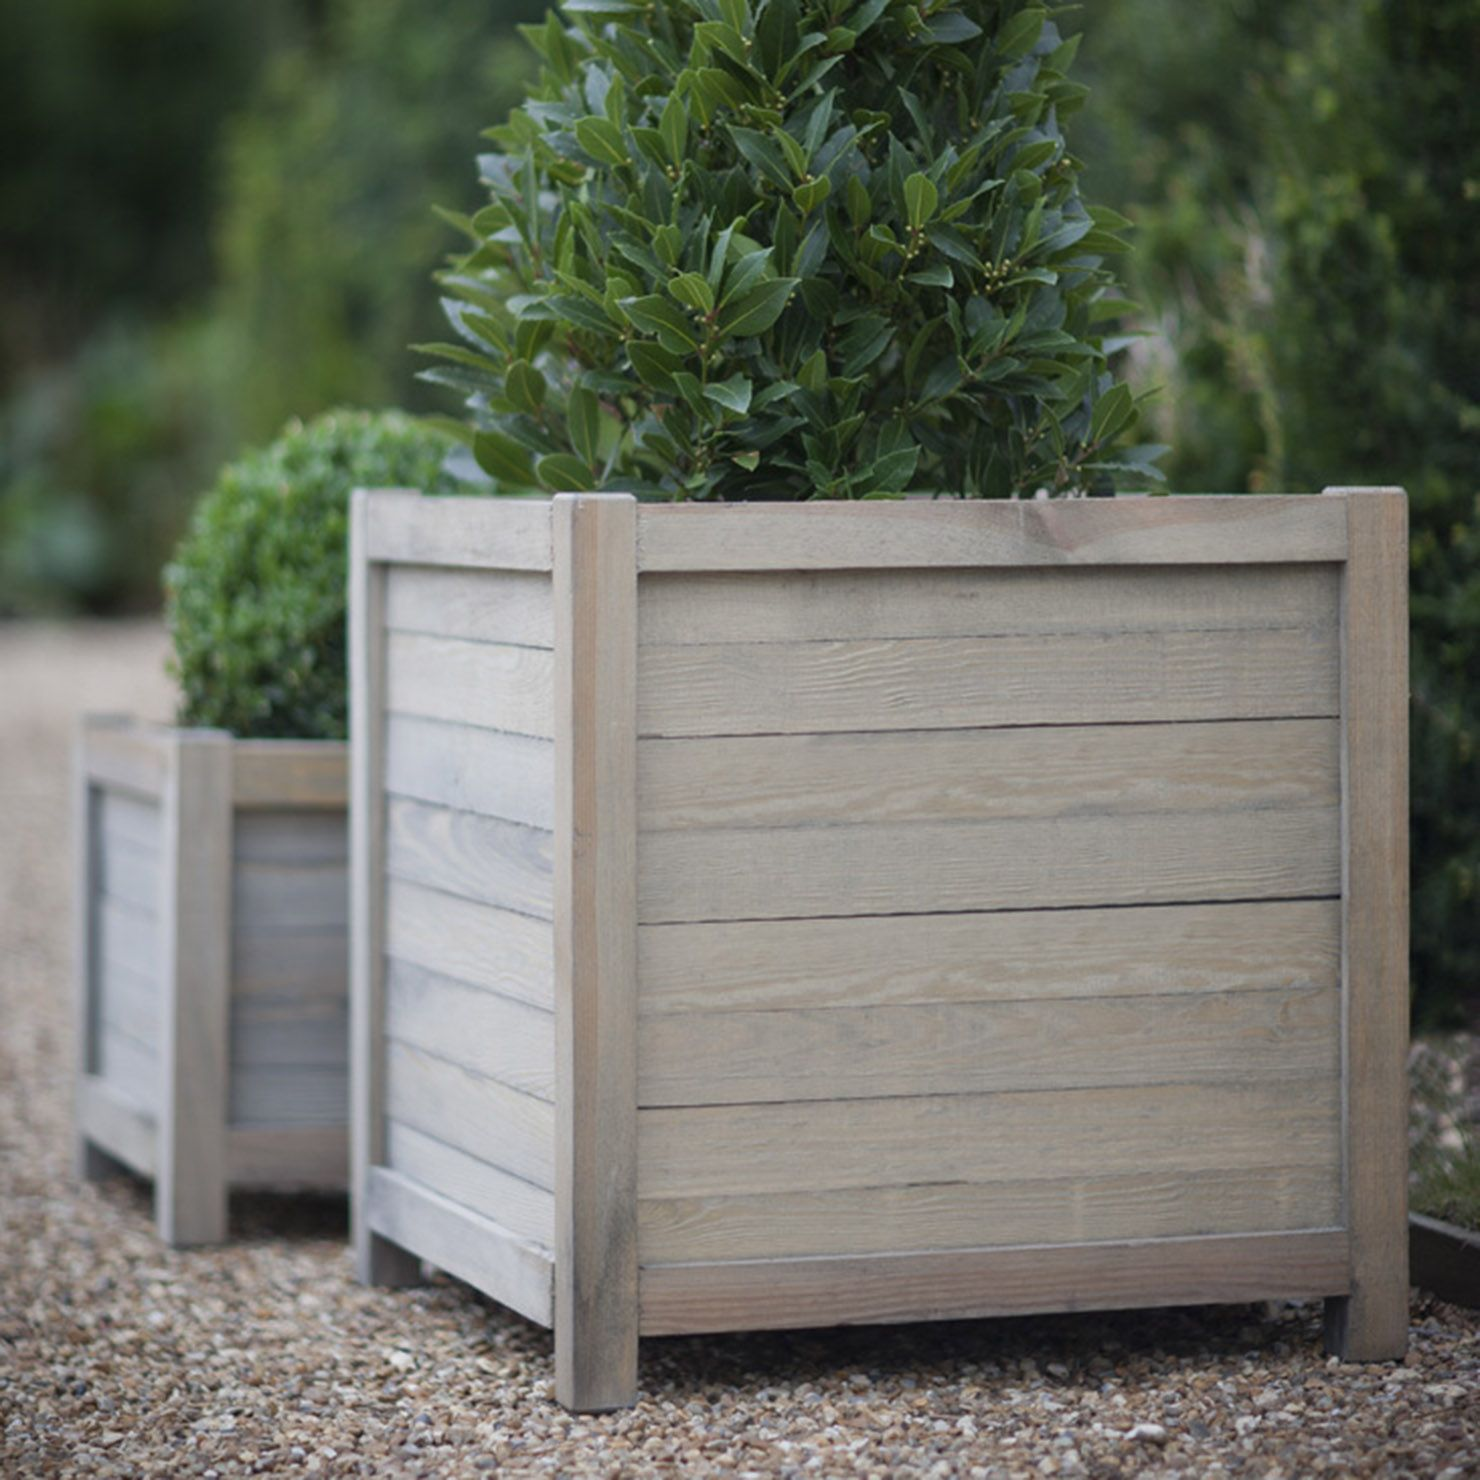 gro planter cedar garden vertical wooden with wood freestanding boxes main products